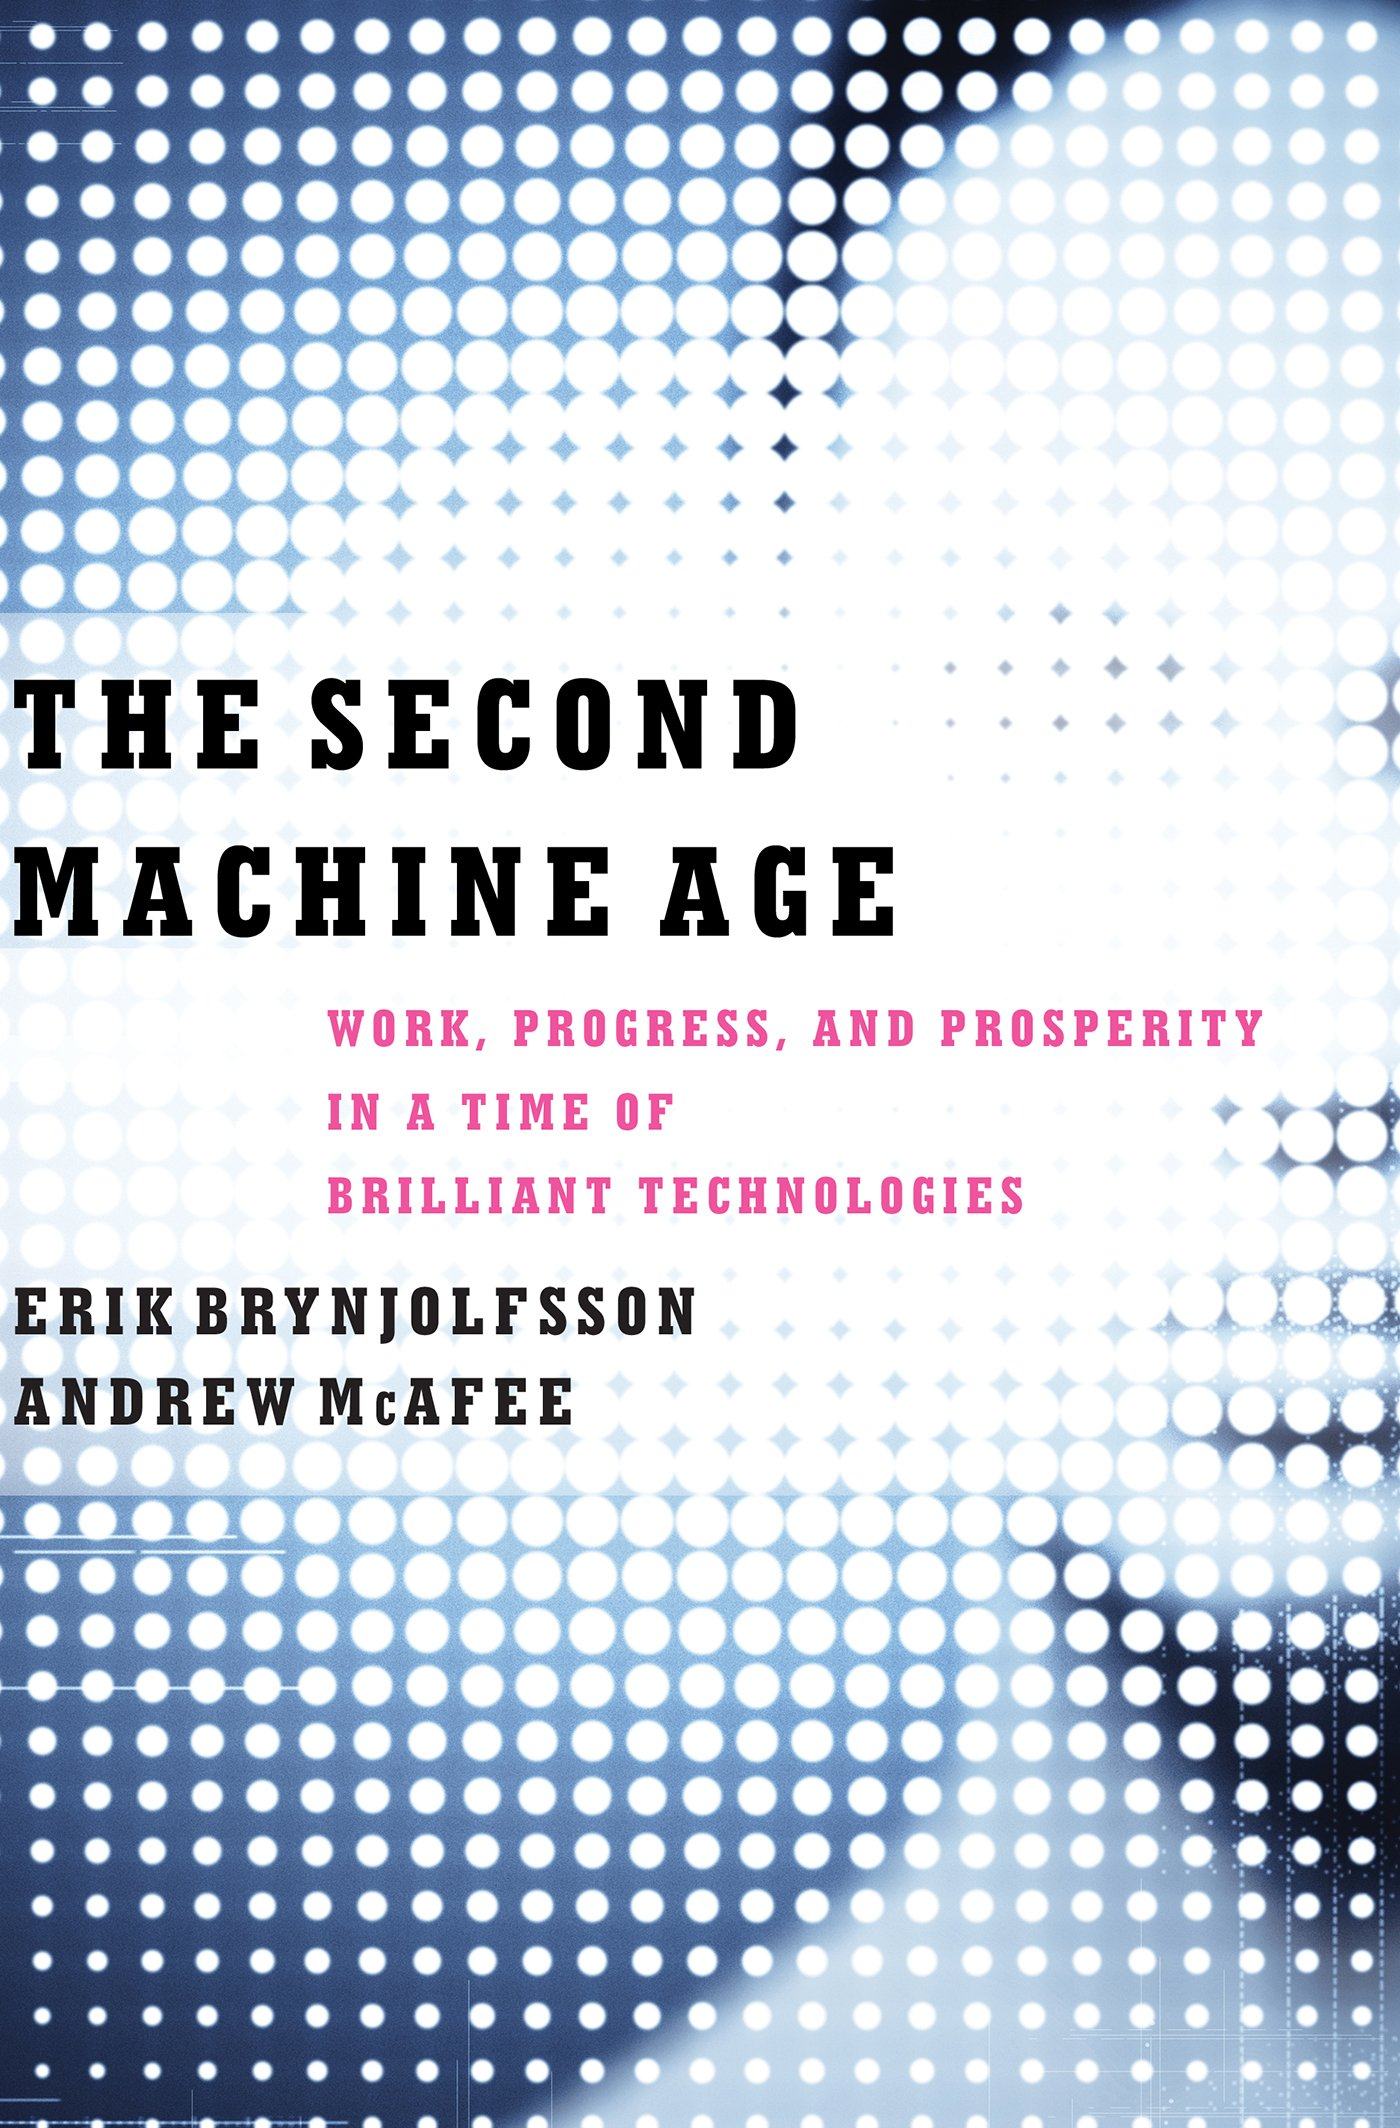 The Second Machine Age: Work, Progress, and Prosperity in a Time of Brilliant Technologies - Erik Brynjolfsson, Andrew McAfee - reviews for audiobook - quotes, rating, reviews, where to buy